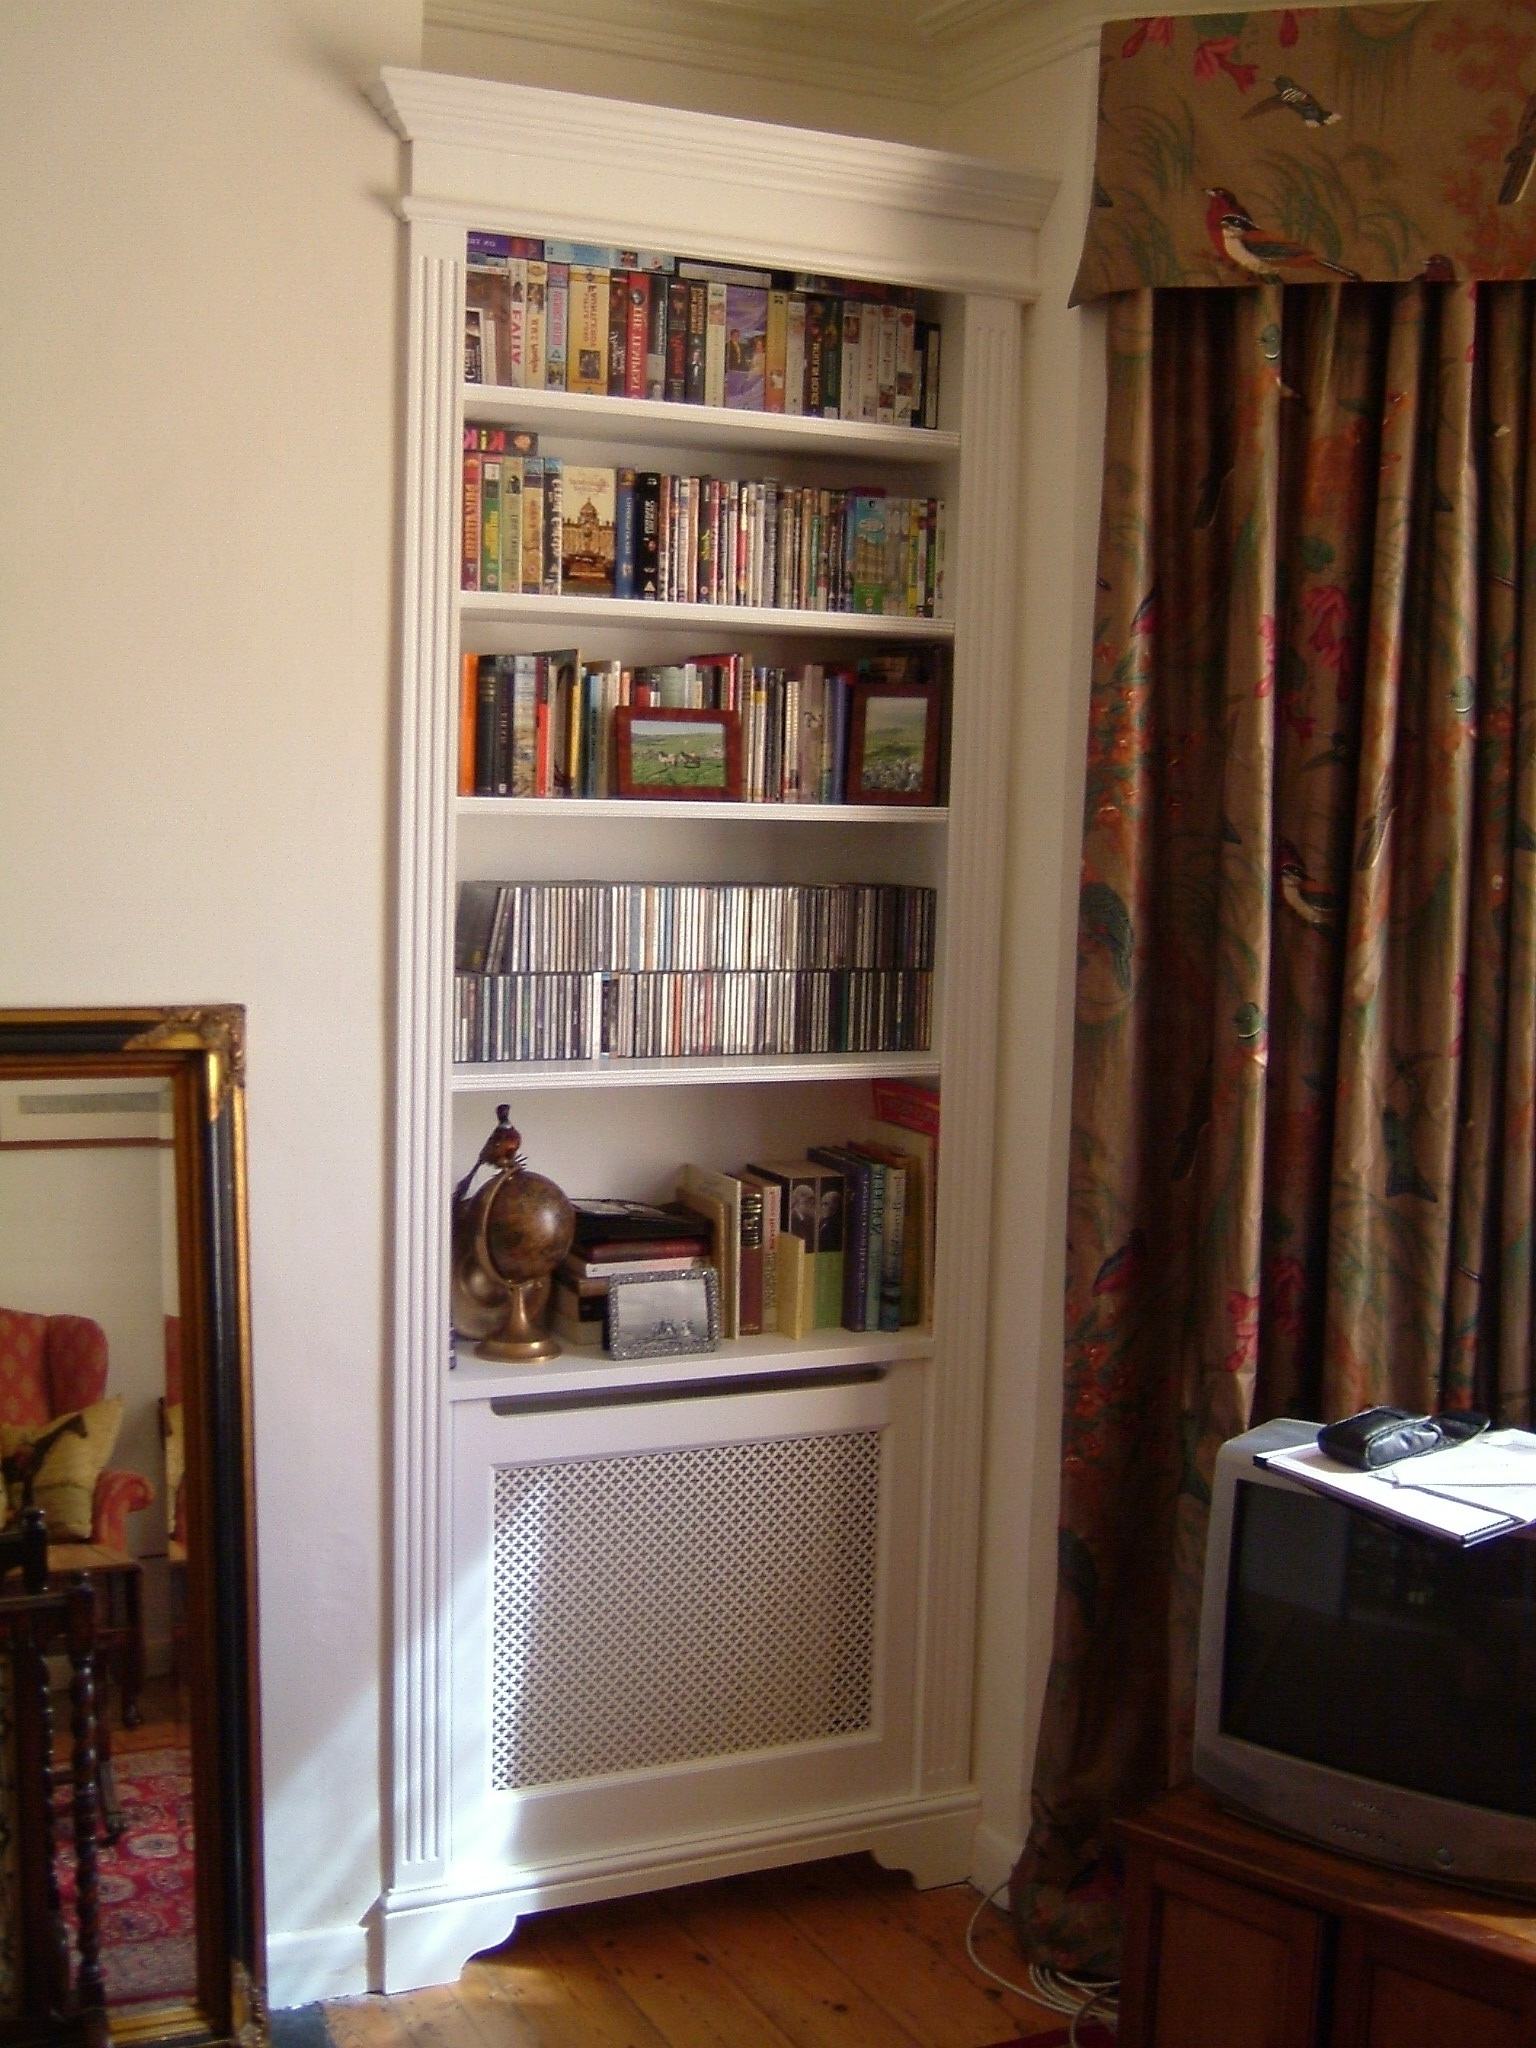 Widely Used Bookcases Radiator Cover Throughout Hidden Radiator With Bookcase Above (View 14 of 15)